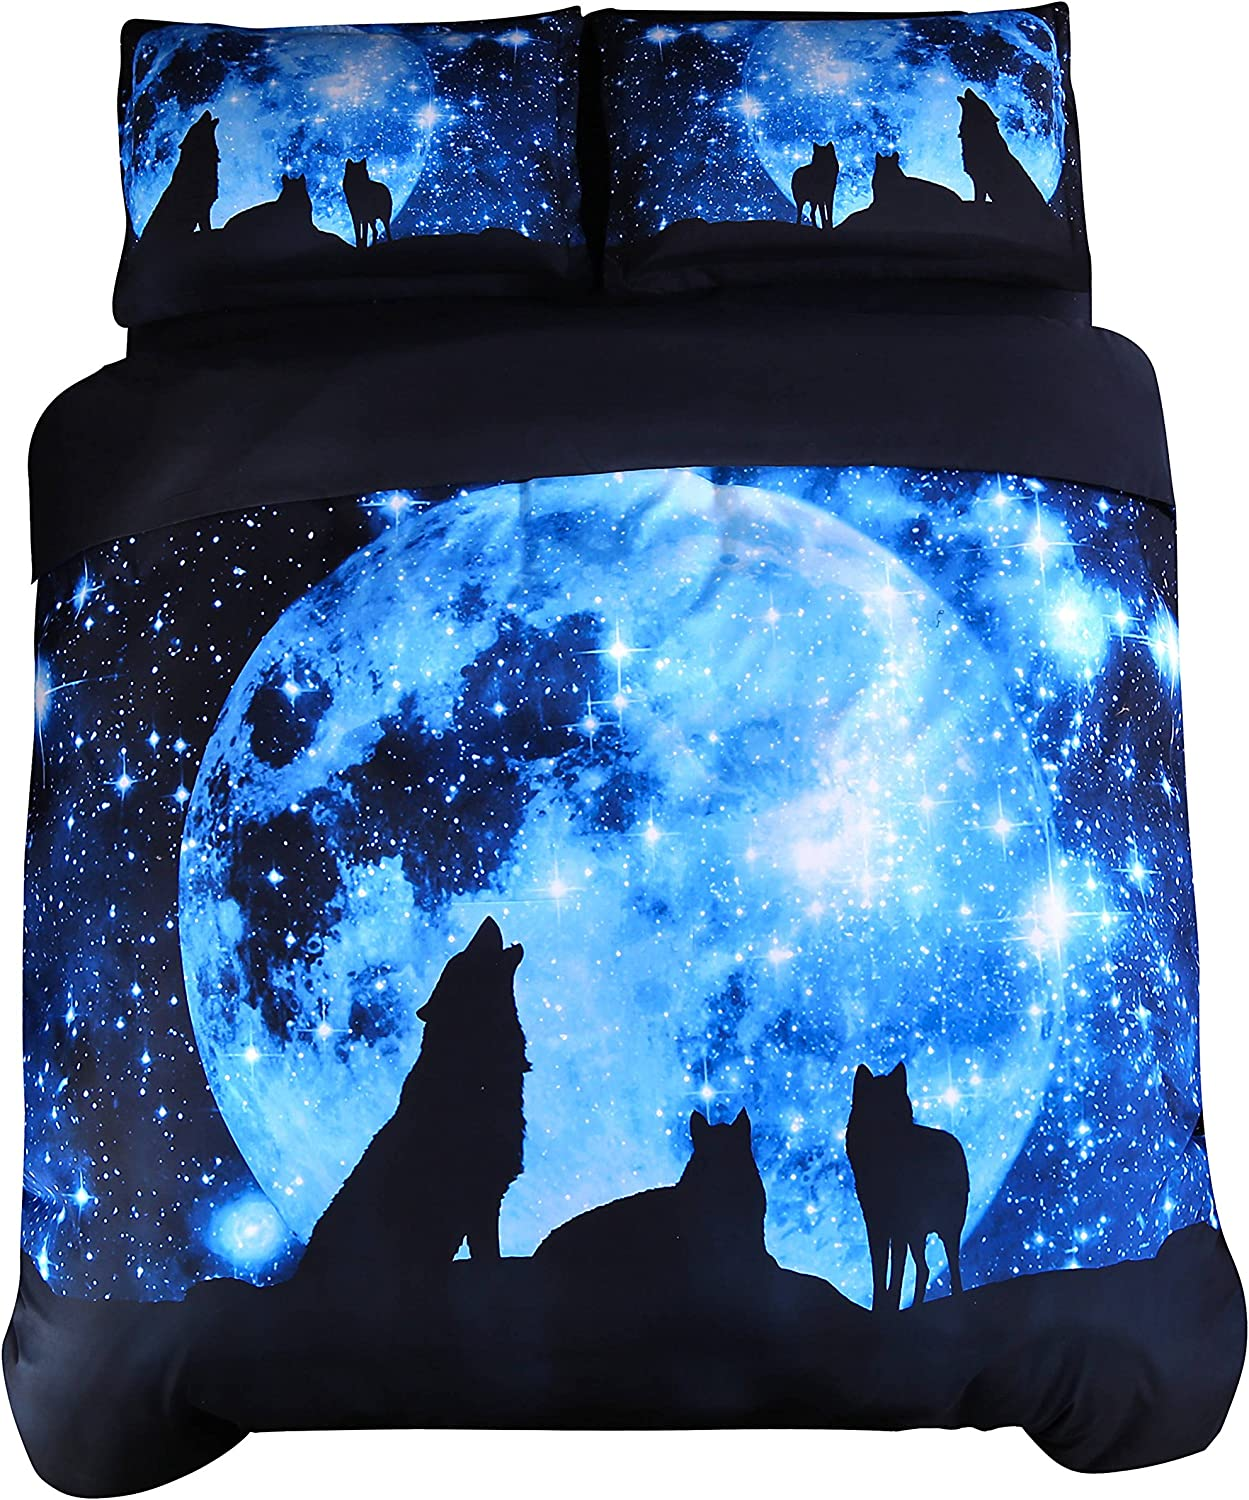 Amazon Com Wowelife 3d Galaxy Wolf Bedding Kids Wolf Bed Set Twin Blue Moonlight 4 Pieces With 1 Duvet Cover 1 Flat Sheet And 2 Pillow Cases Comforter And Fitted Sheet Not Included Queen Home